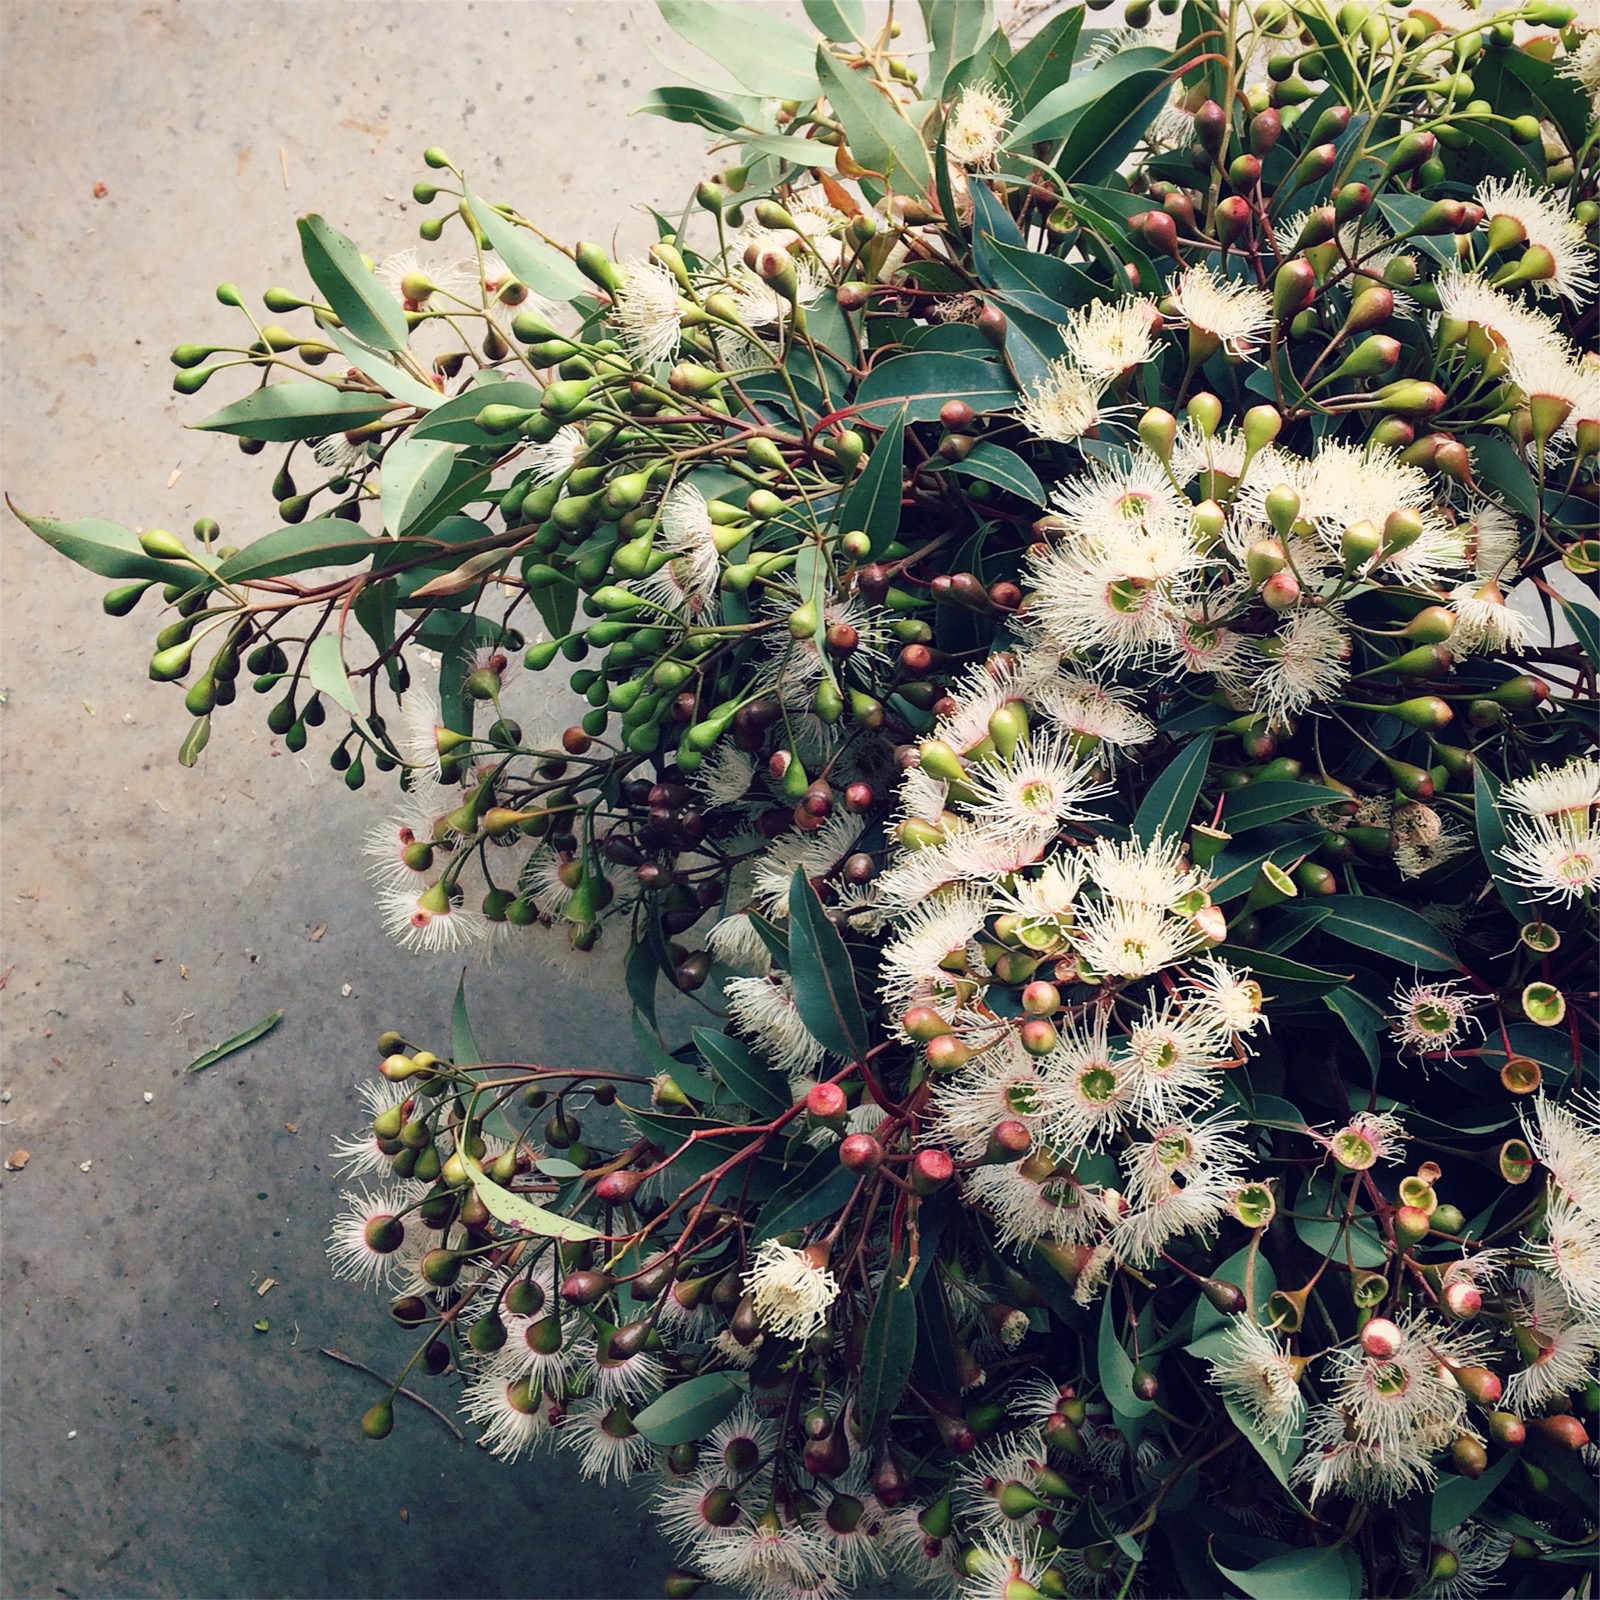 Swallows nest farm july 2017 highlights were added with a stunning flowering gum that has white flowers but red buds they came from a very large mature tree that was completely mightylinksfo